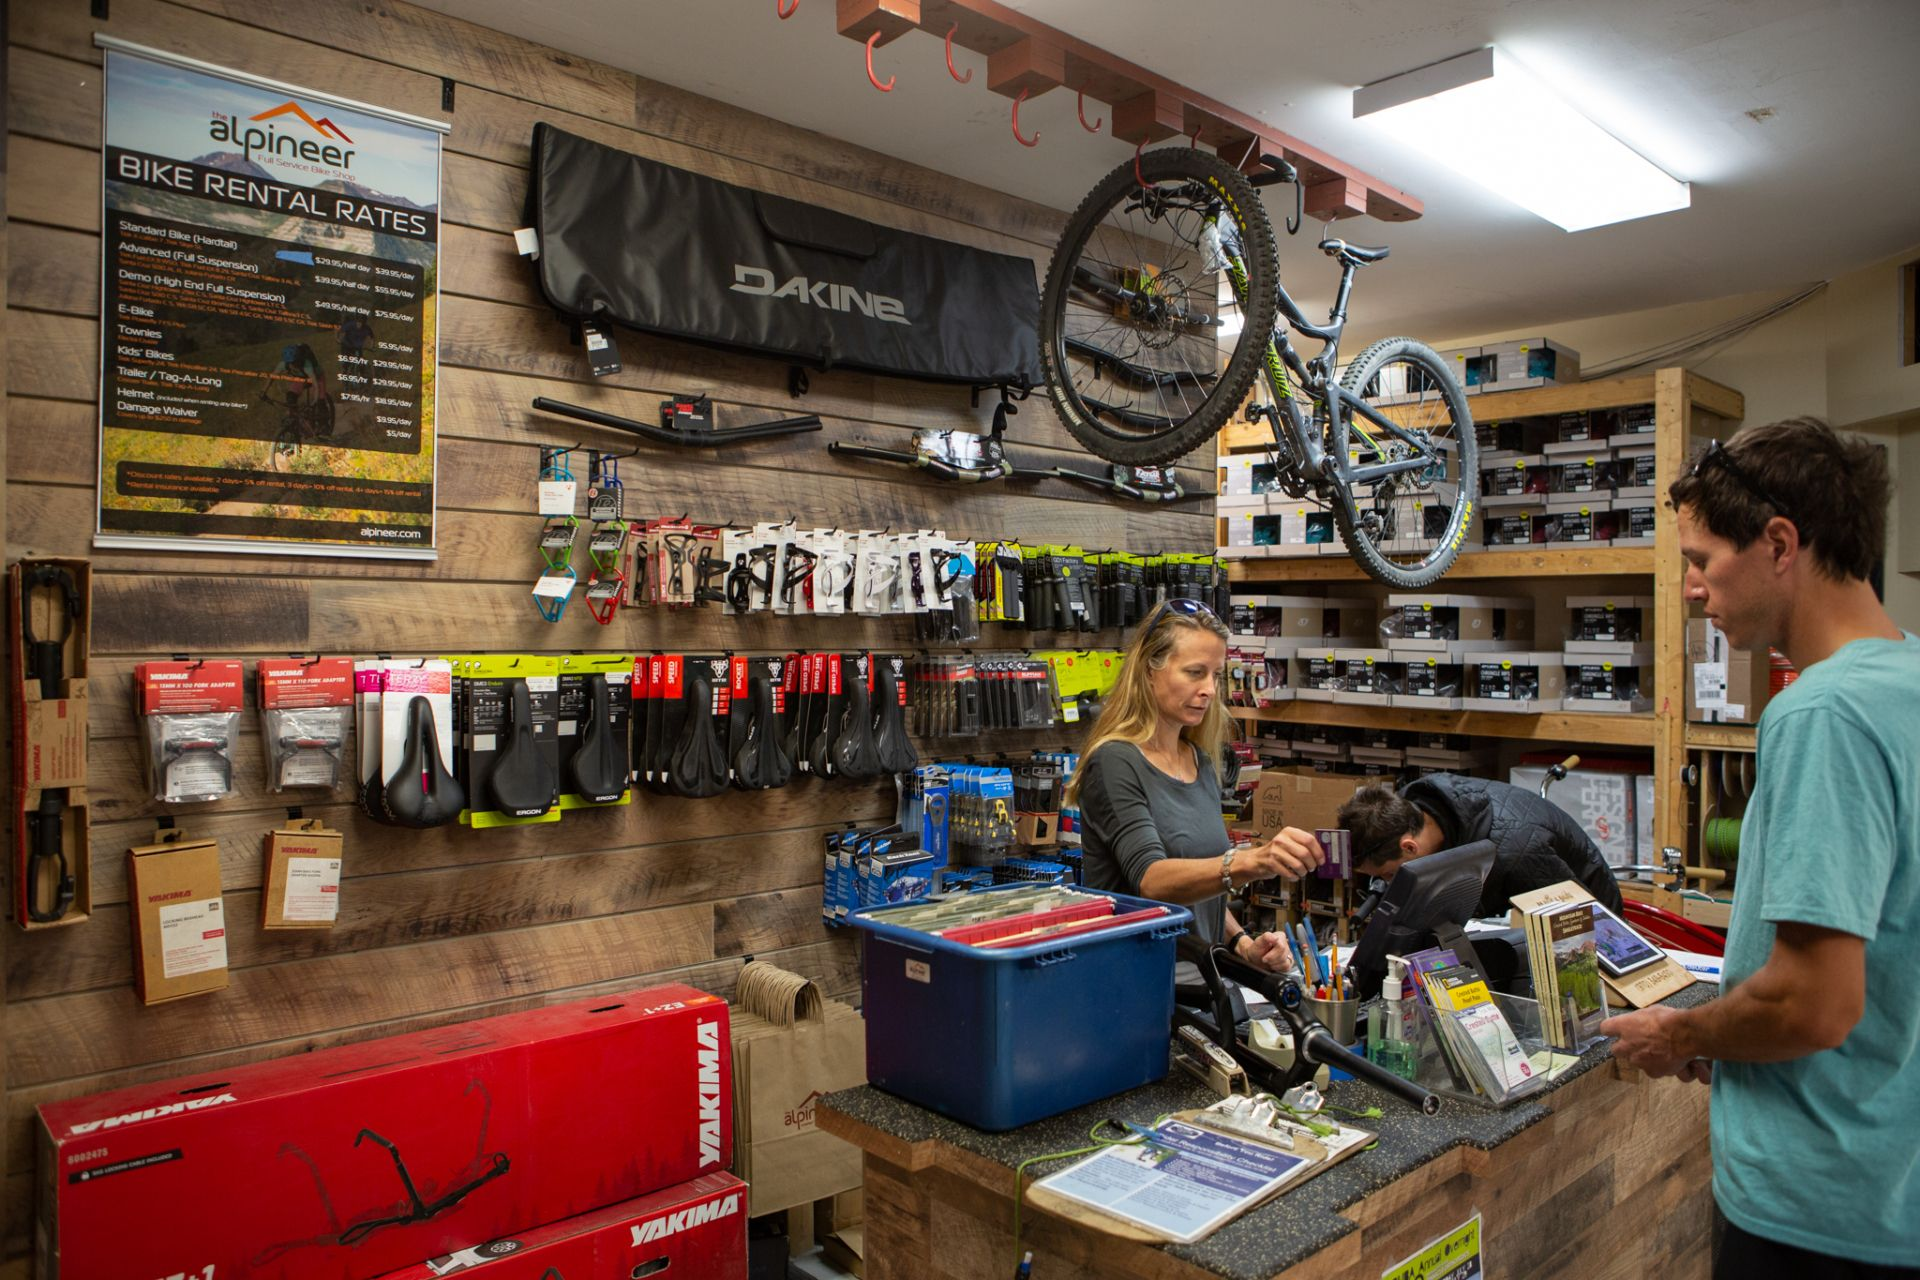 The Alpineer - Crested Butte Bike Shop - Bike Rentals - Ski and Bike Shop